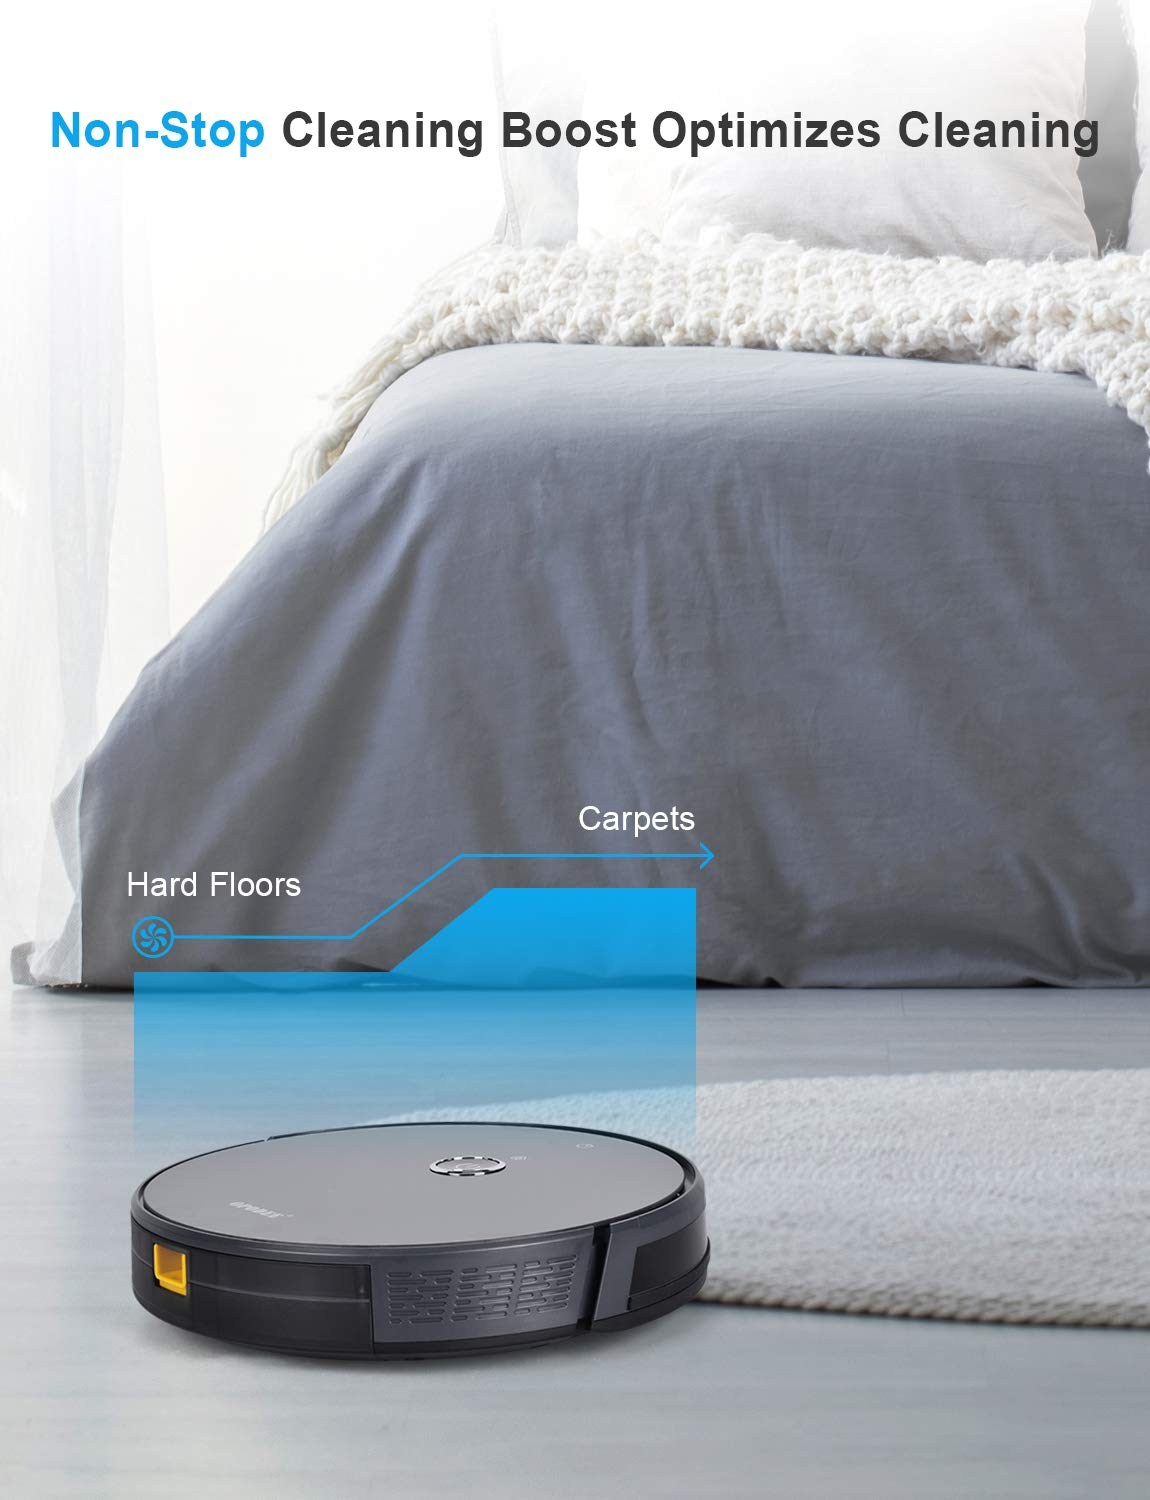 Opodee iRobot cleaner for carpets and floors